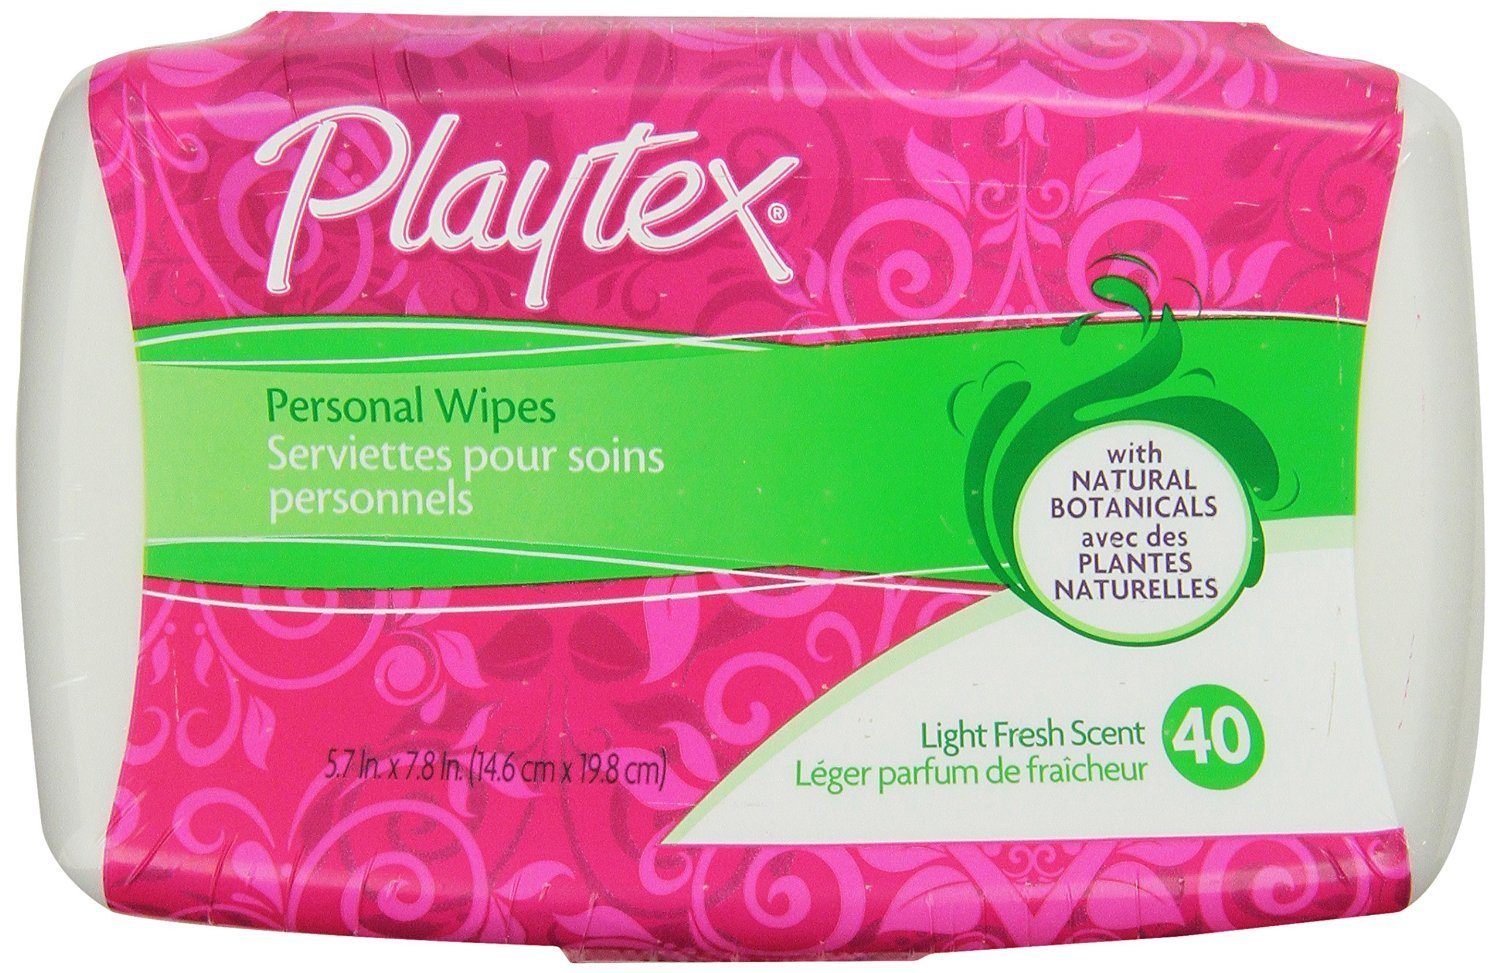 Playtex Femcare Personal Cleansing Cloths: 40 Count Tub